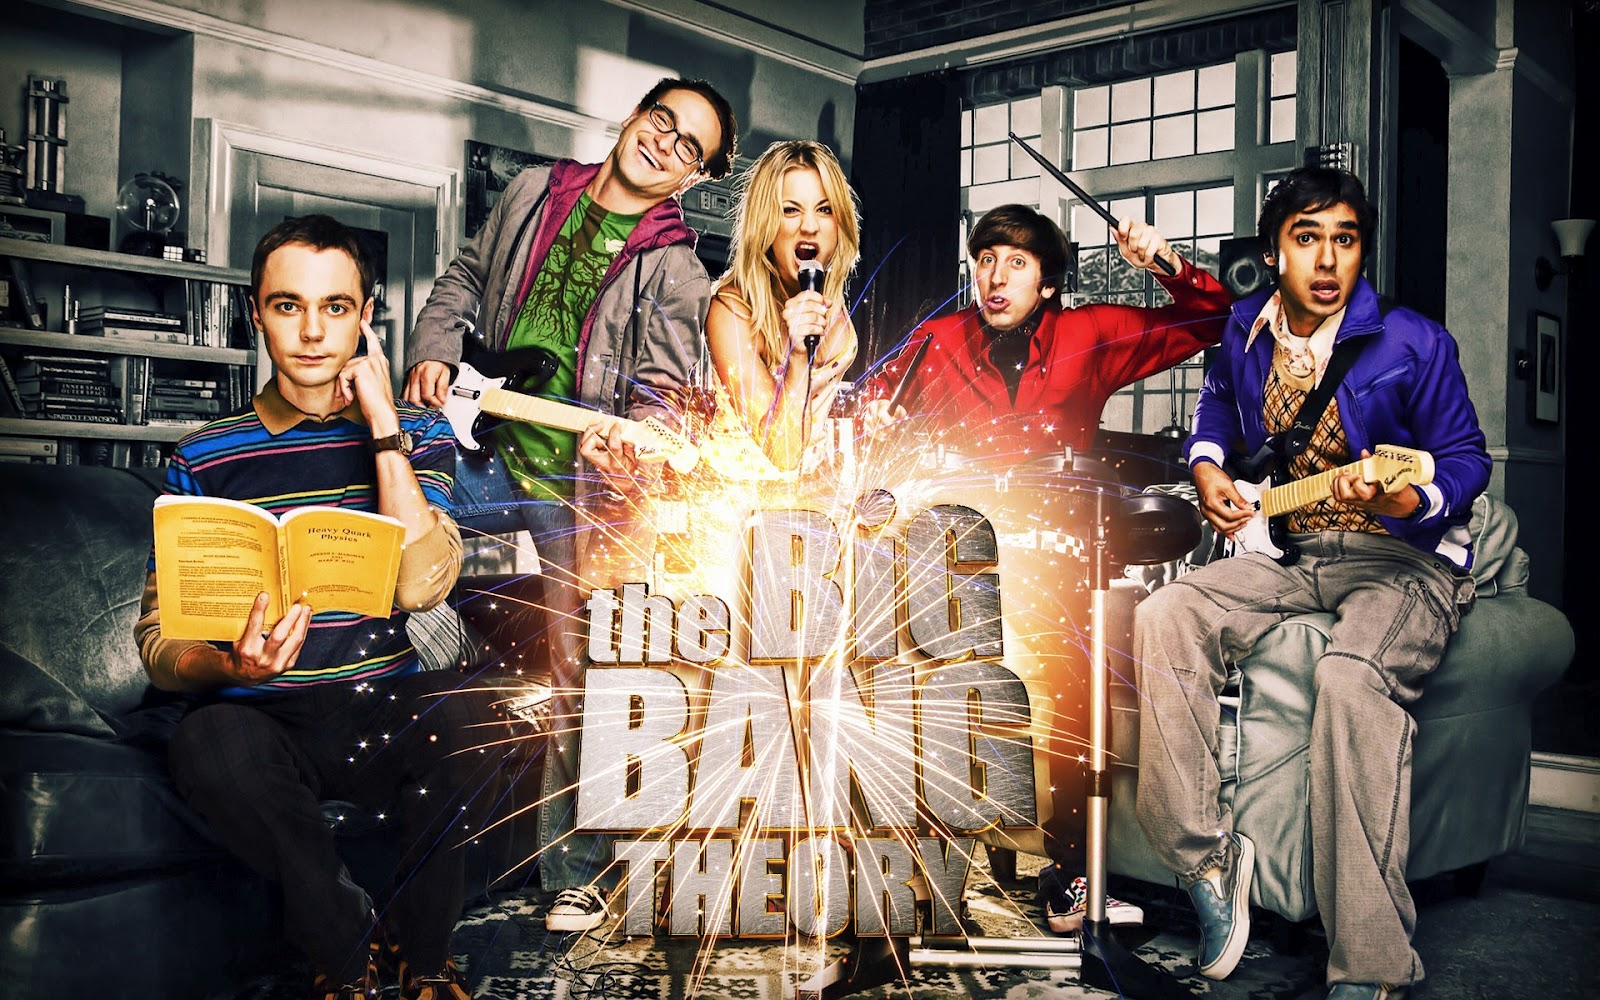 http://3.bp.blogspot.com/-mT8RhbdH0jk/UCS2294UiFI/AAAAAAAALoY/hkb3FpgDHec/s1600/the-big-bang-theory.jpg